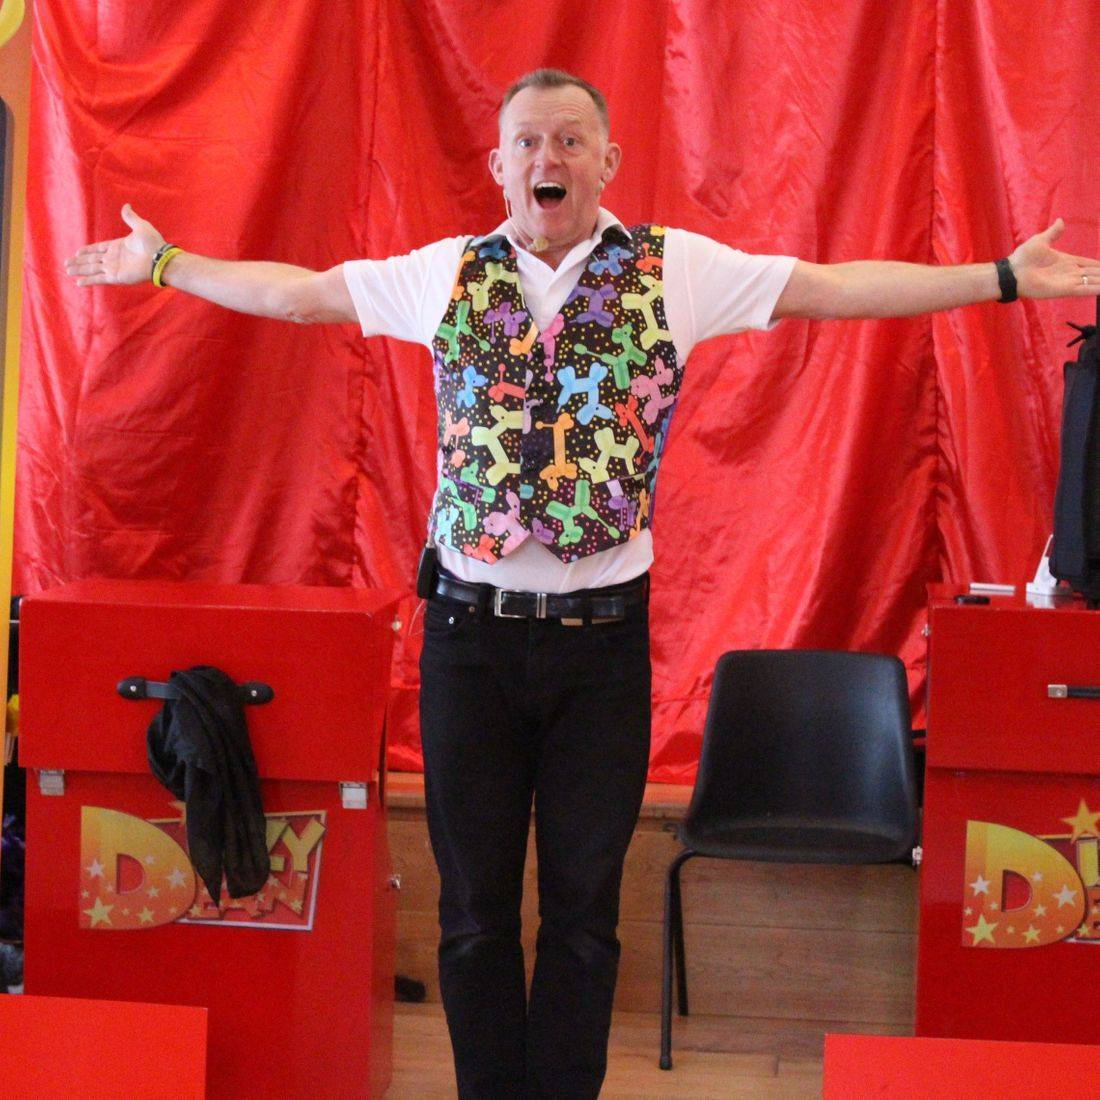 Amazing Magic show today at Henley on Thames with Dizzy Deans Magic